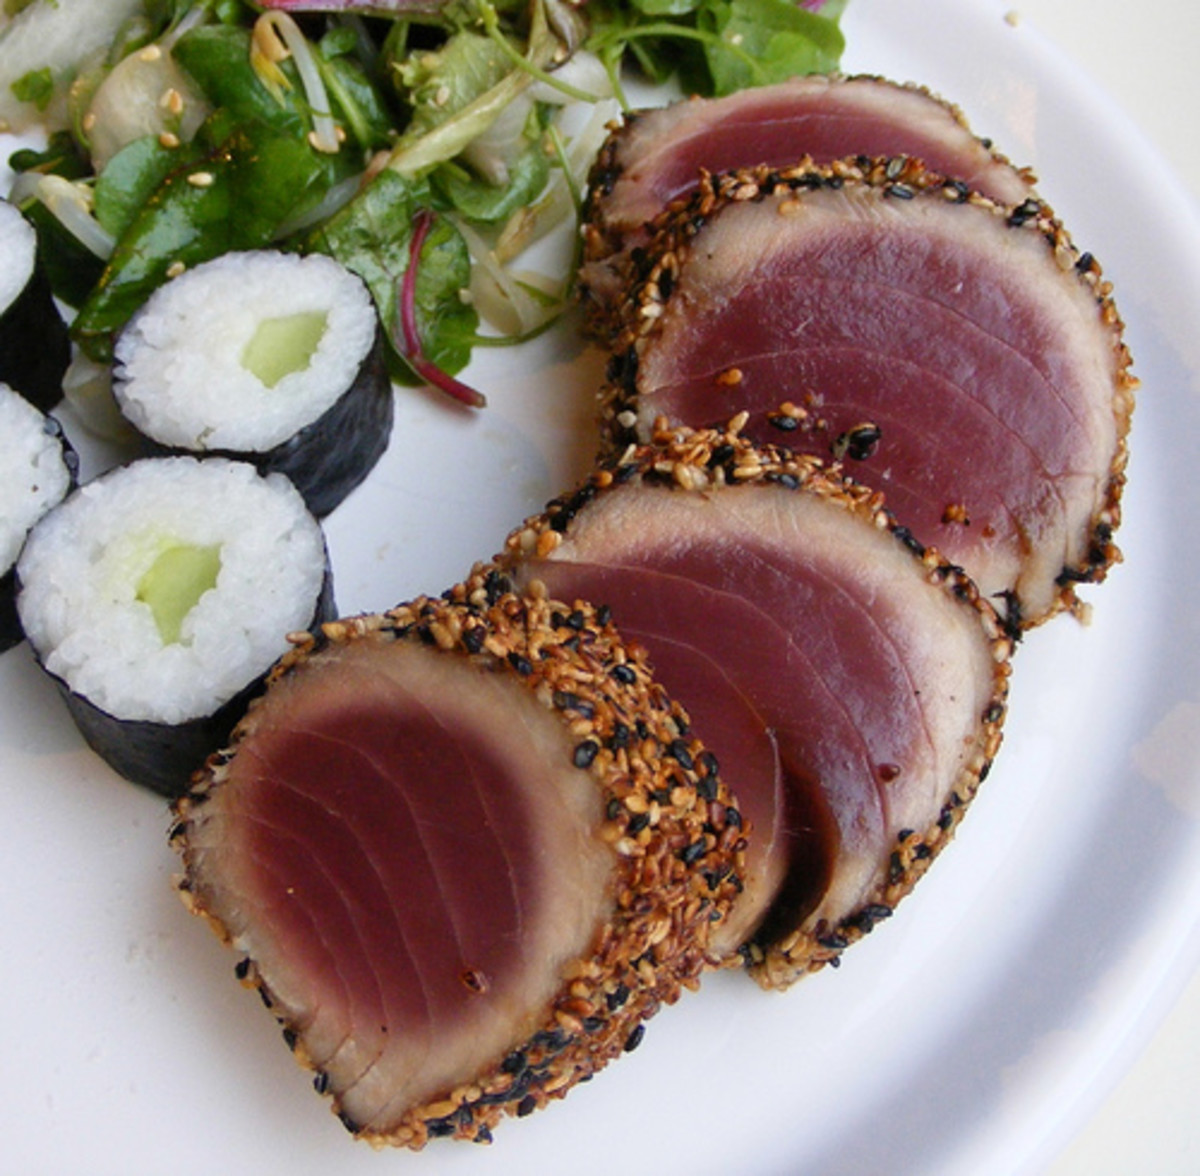 Tuna is a source of Vitamin B